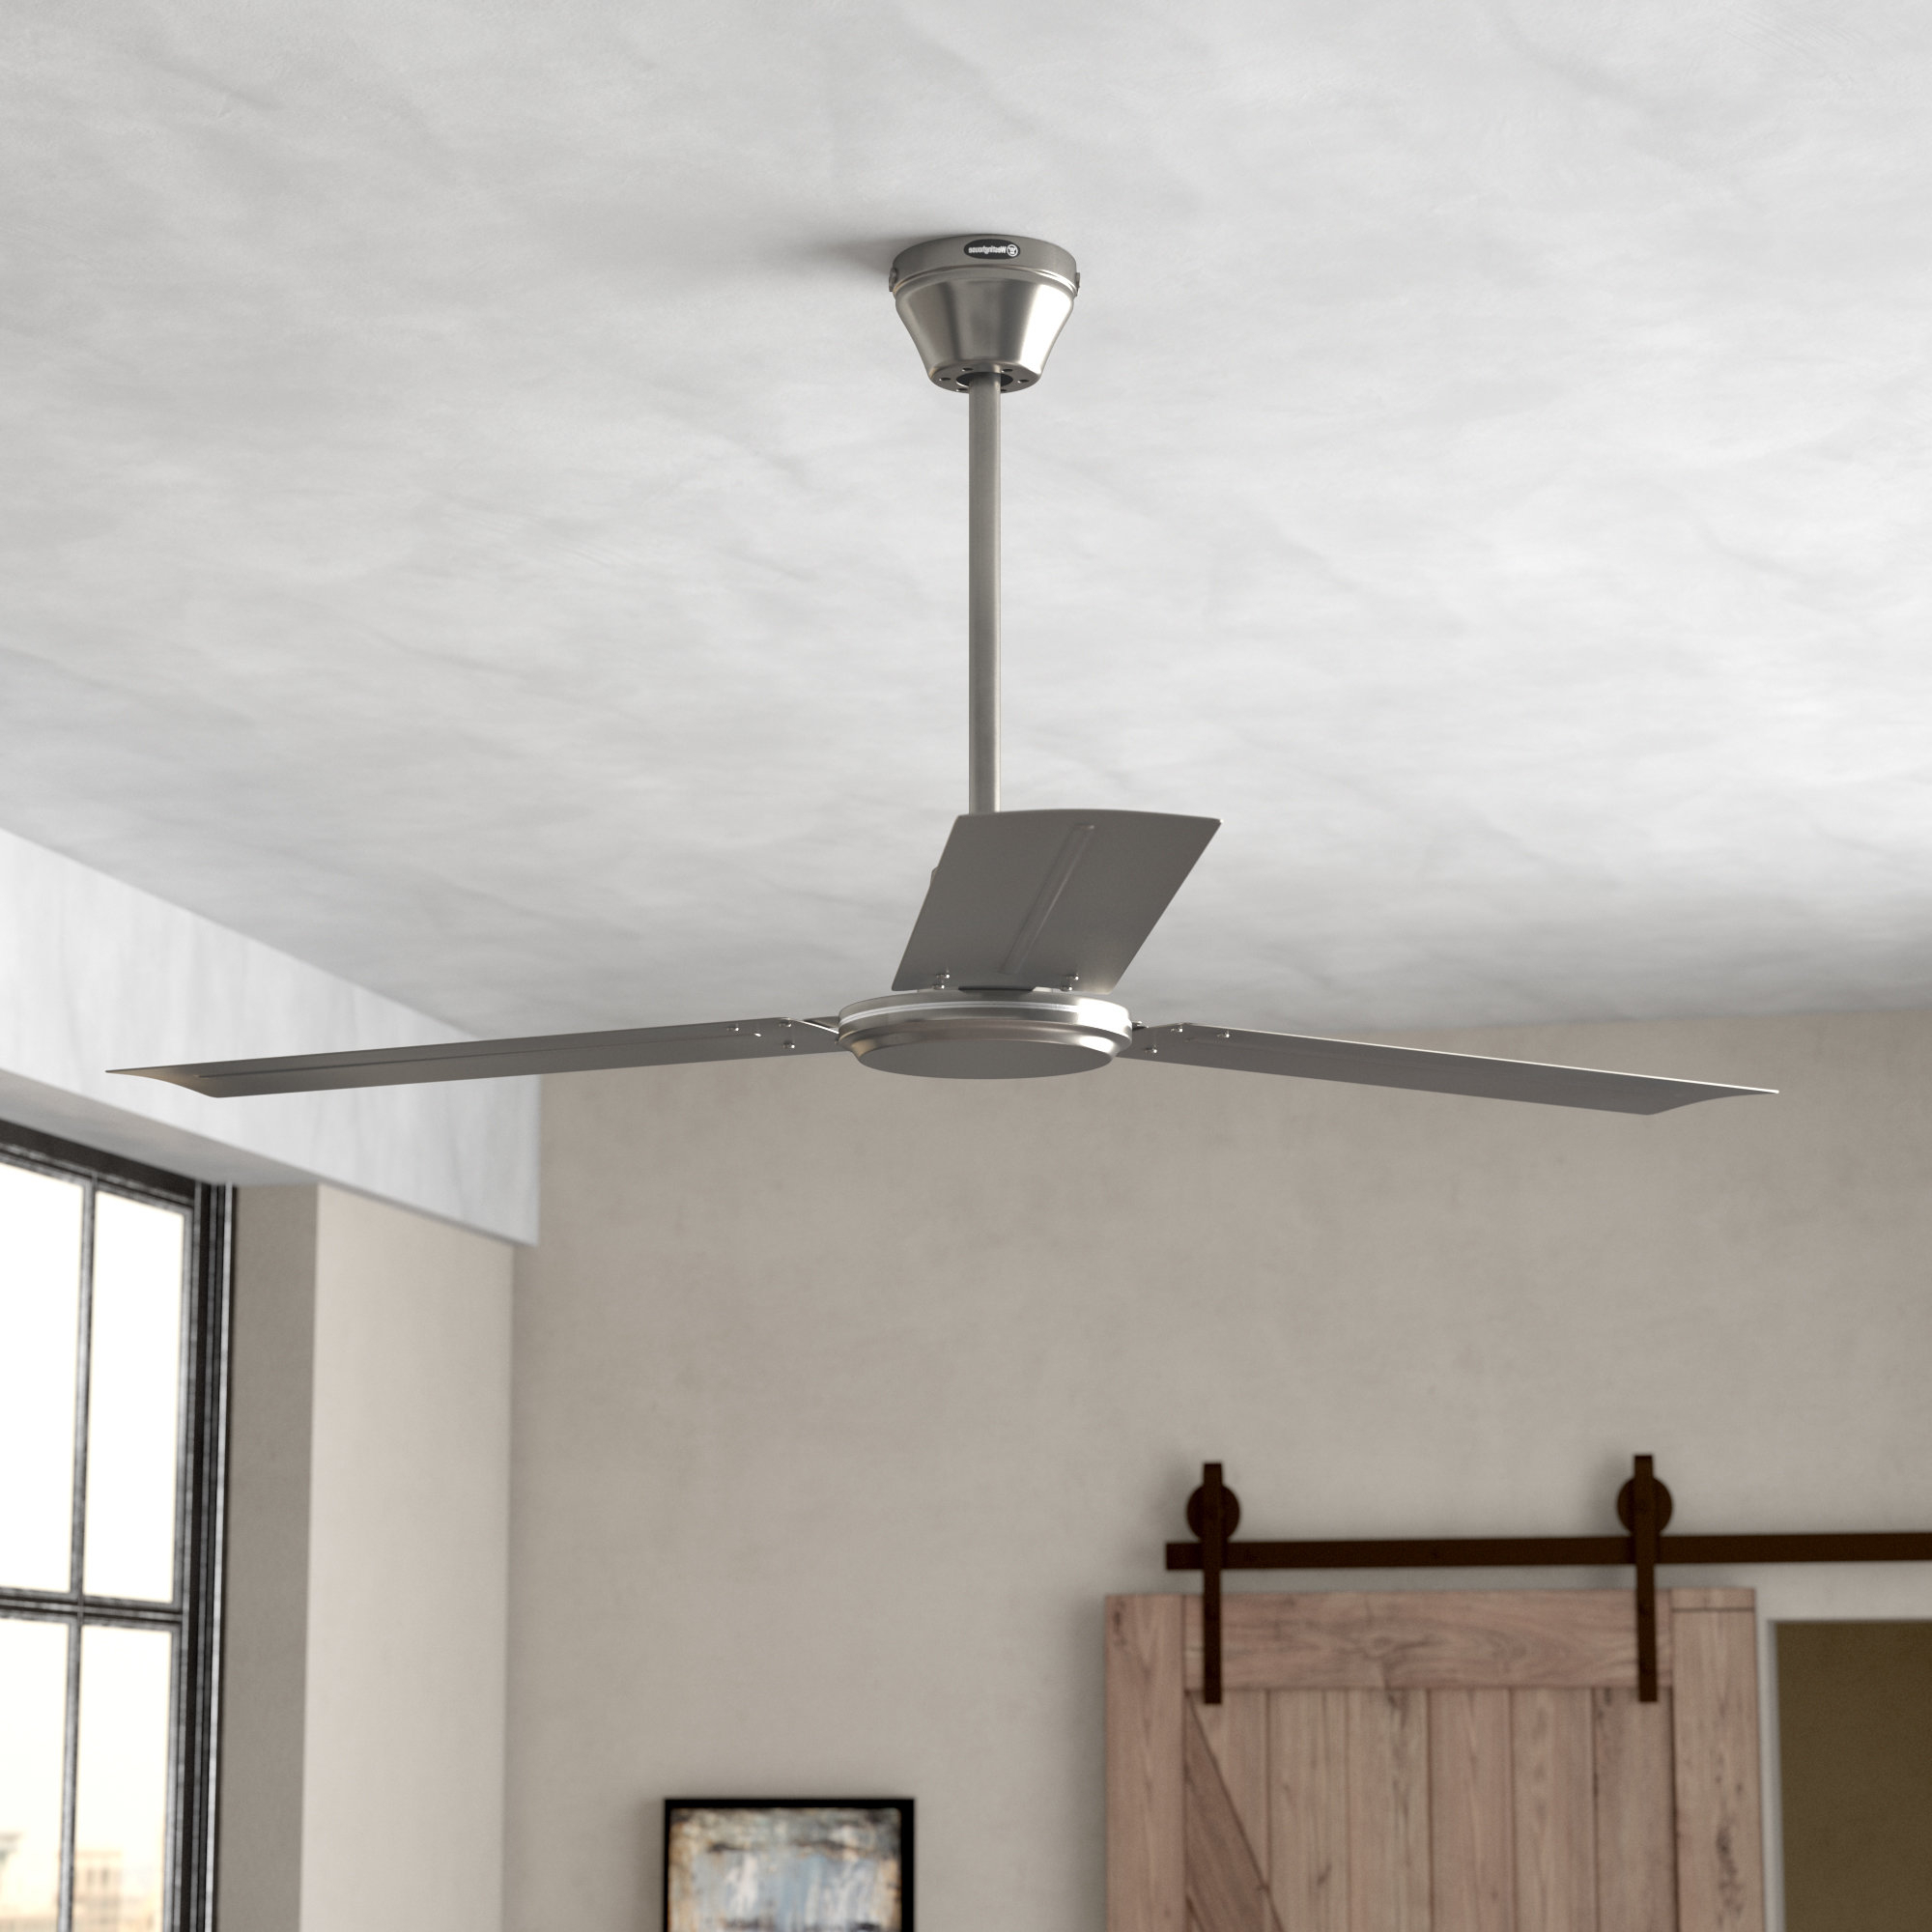 Well Liked Emil 3 Blade Ceiling Fans Within 56 Emil 3 Blade Industrial Ceiling Fanoutdoor Ceiling Fans (View 3 of 20)